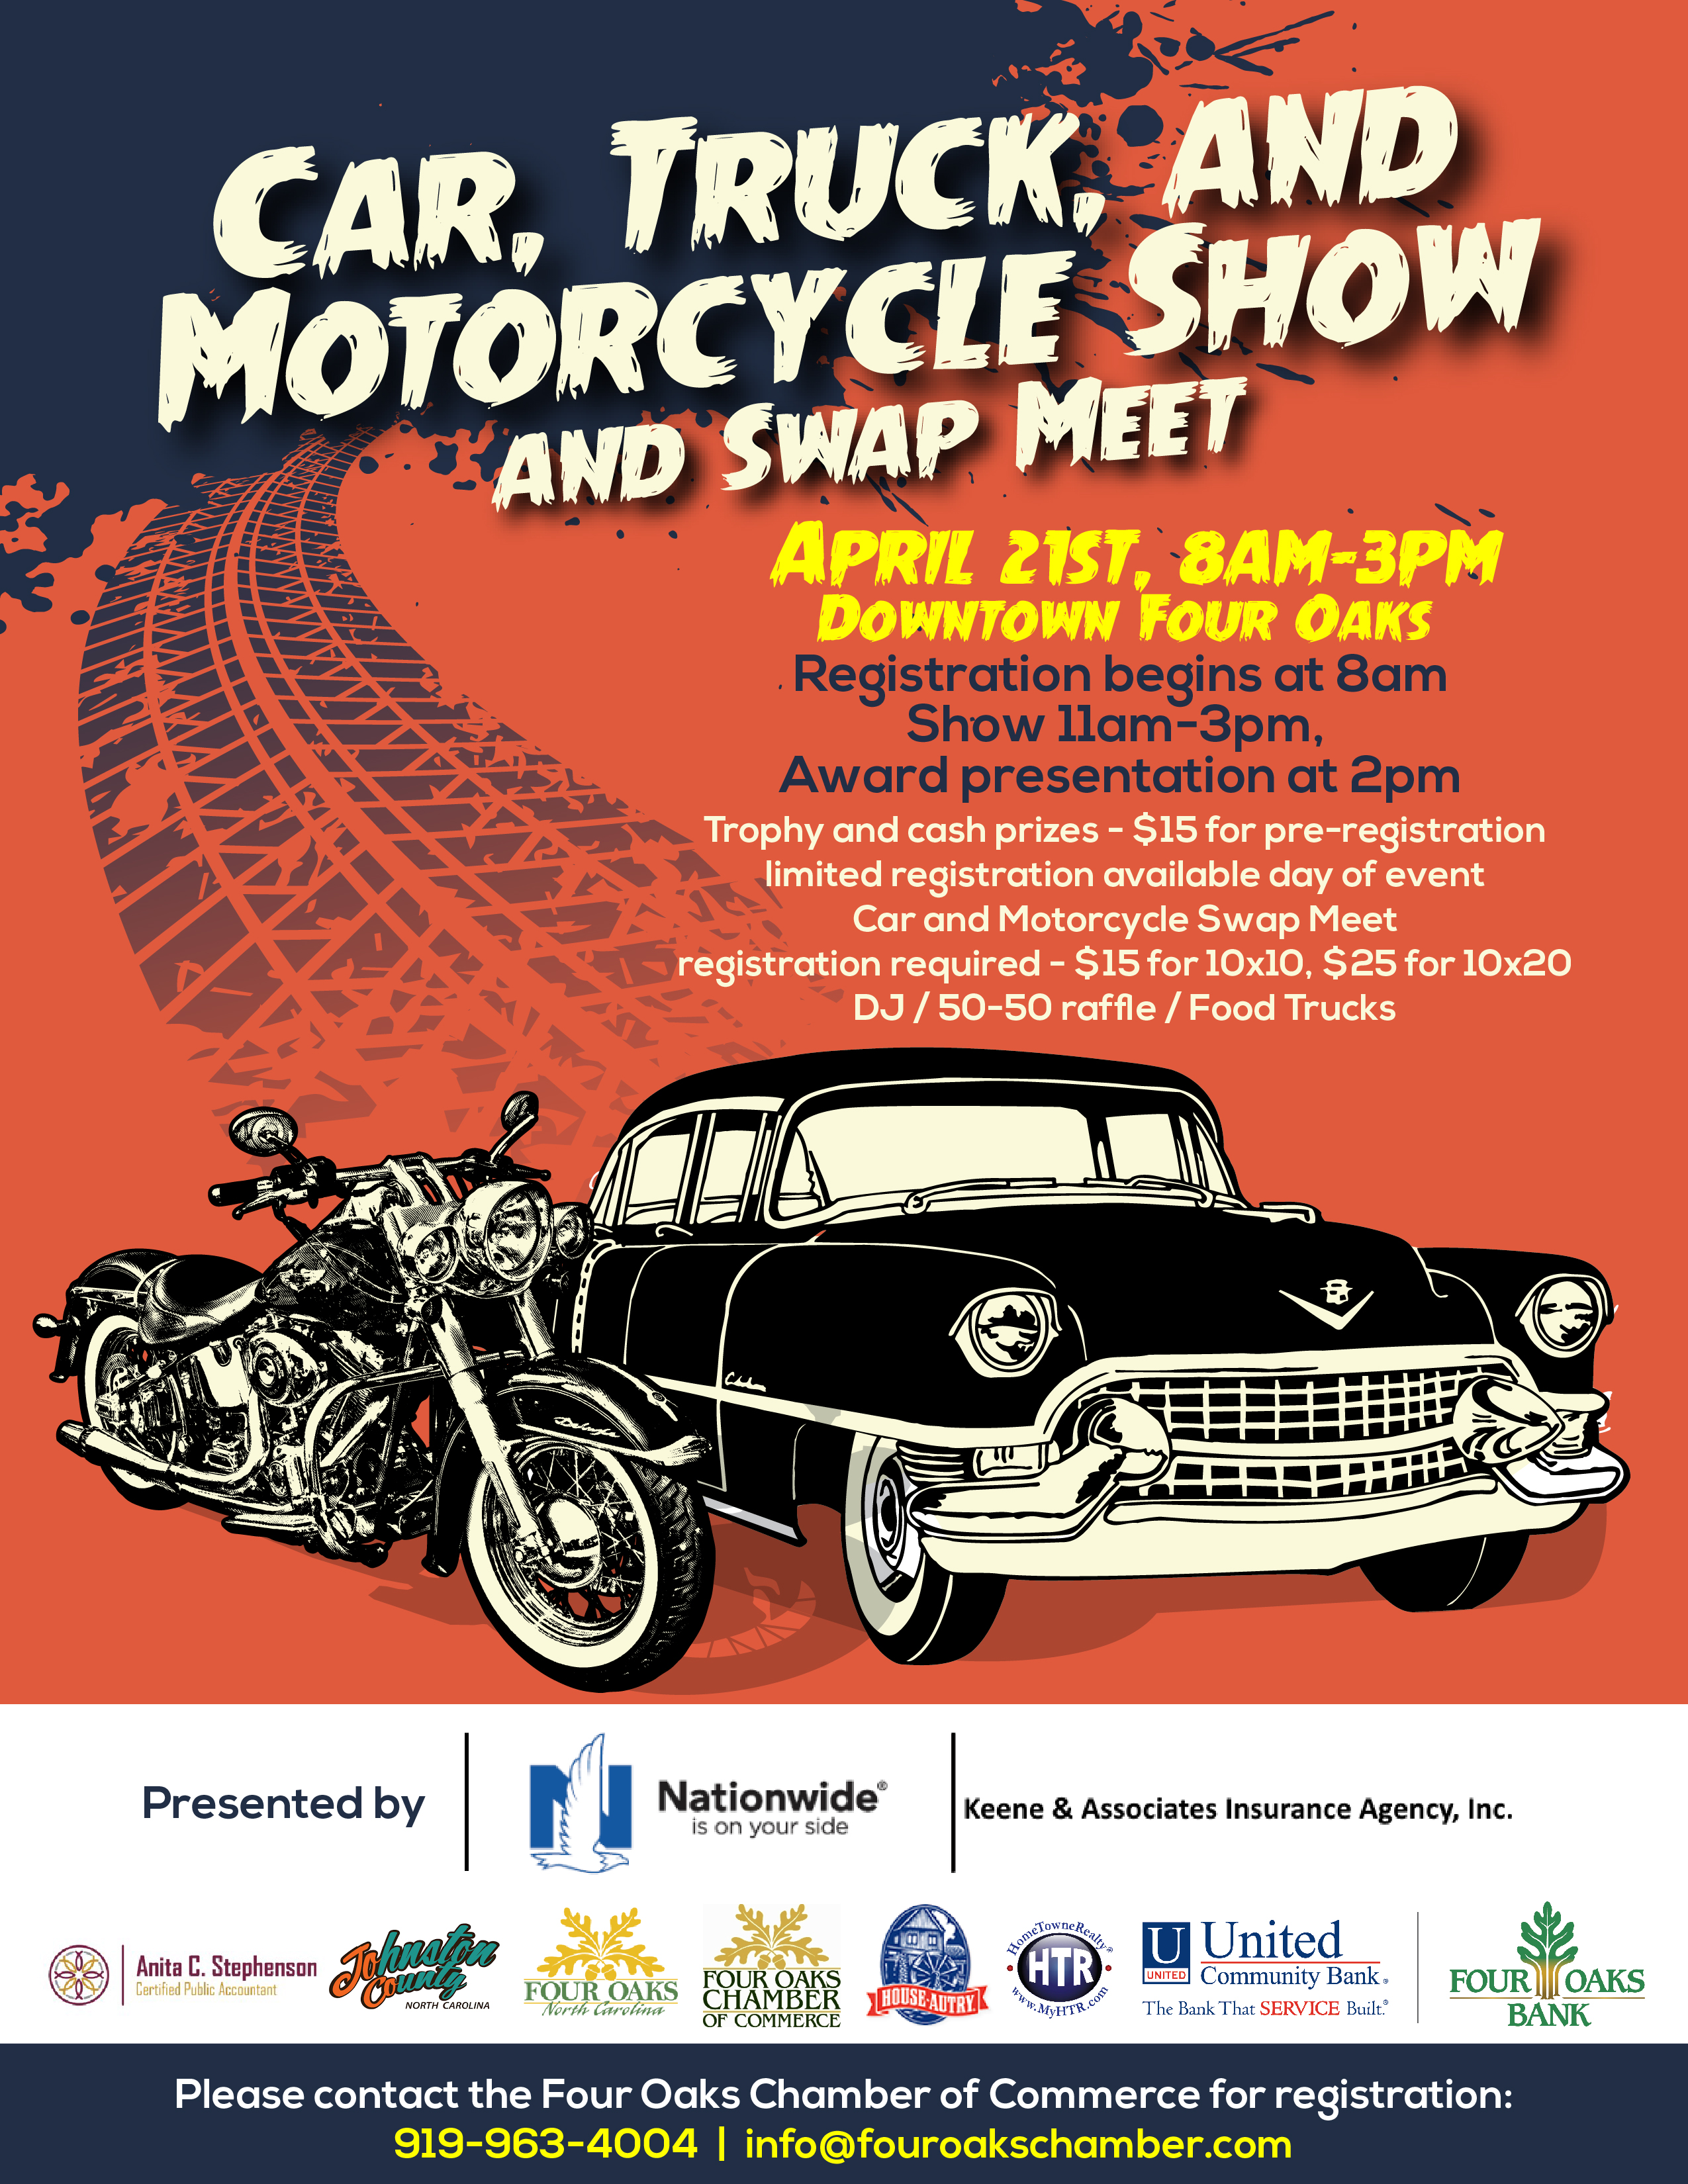 Four Oaks Car Truck And Motorcycle Show JohnstonNowcom - Car and truck shows near me